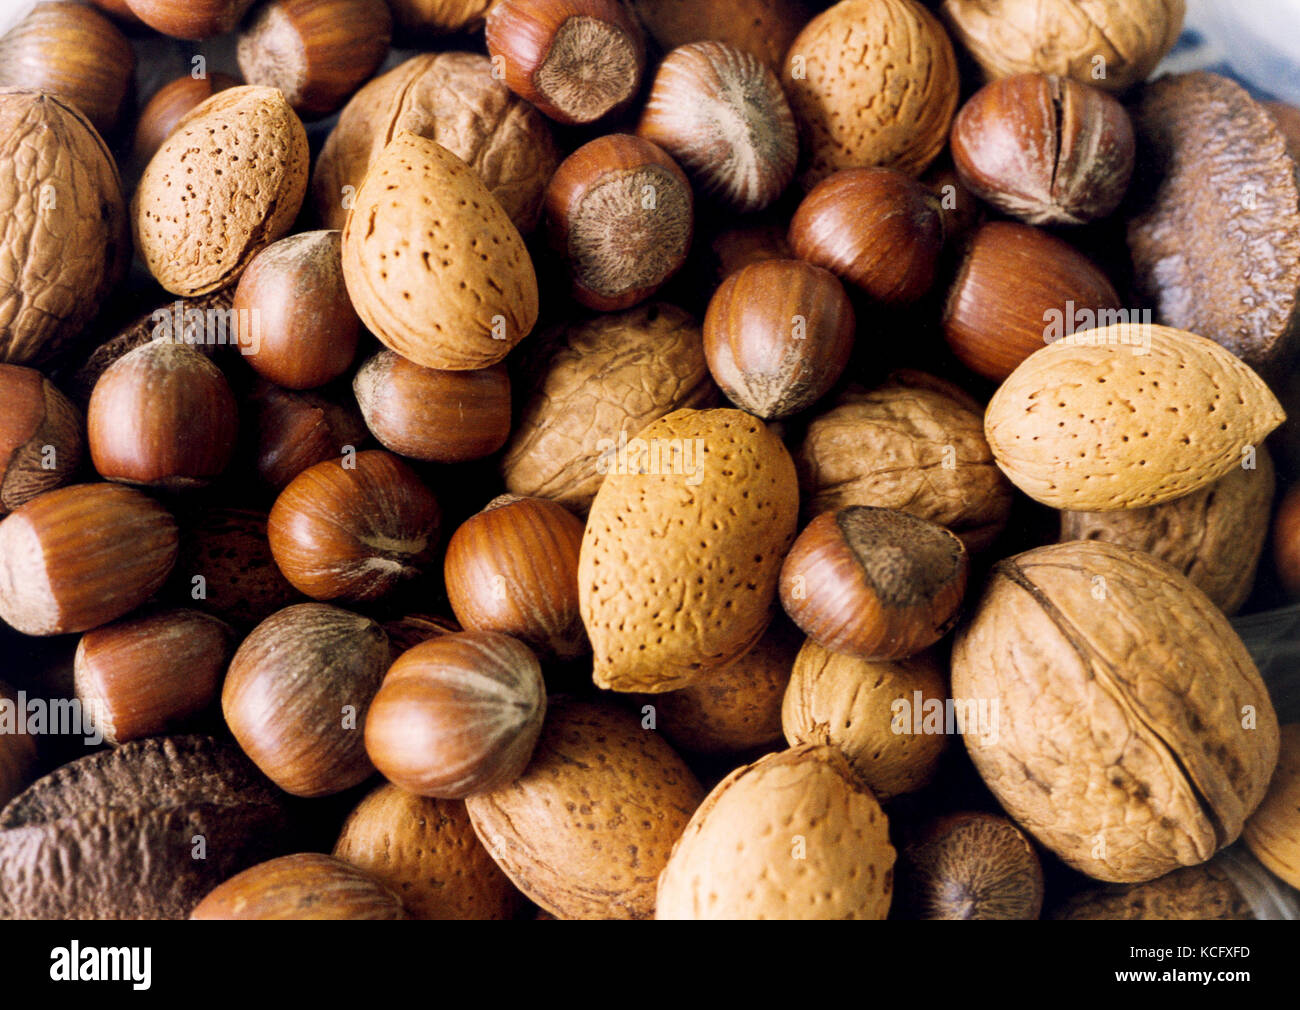 MIXED NUTS 2009 - Stock Image